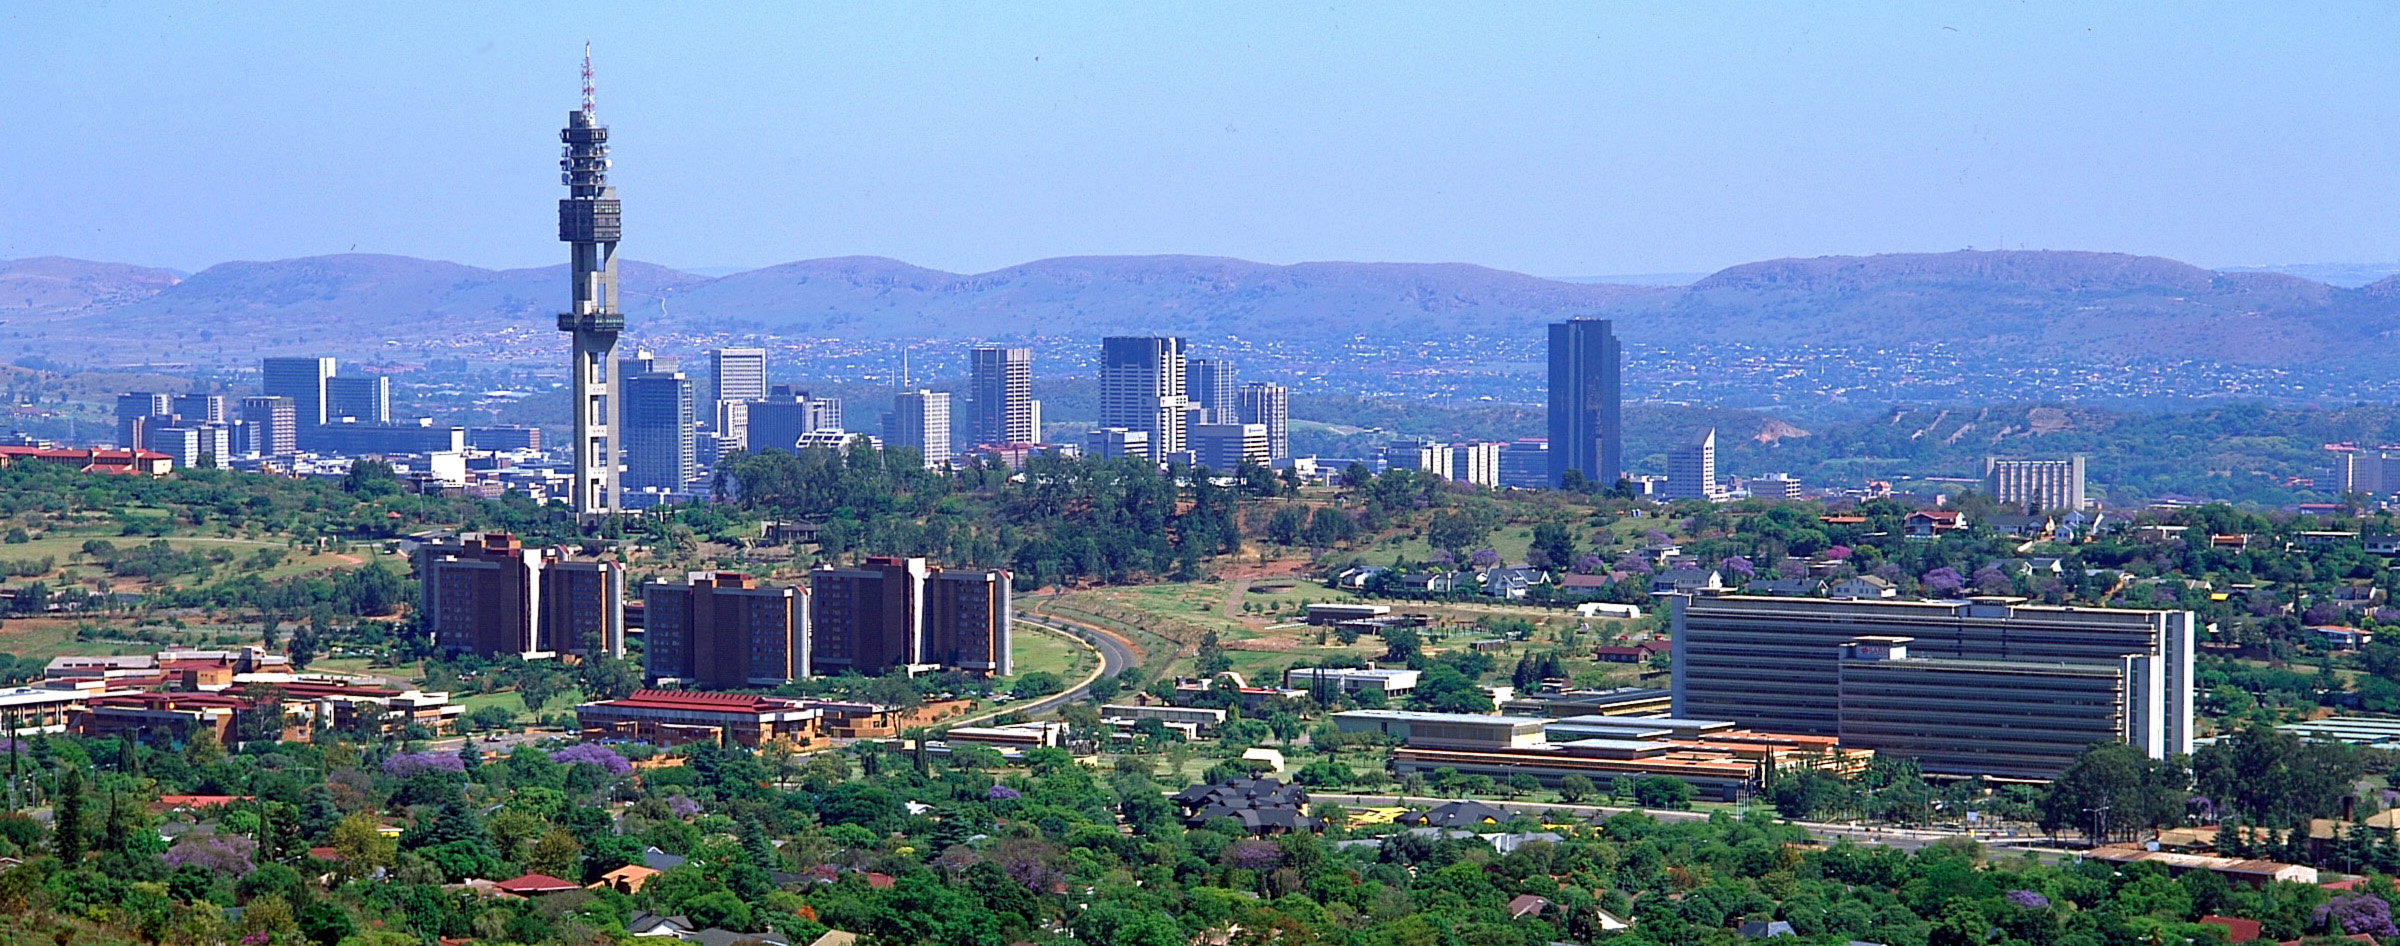 Panorama picture of our service area as plumbers in Pretoria